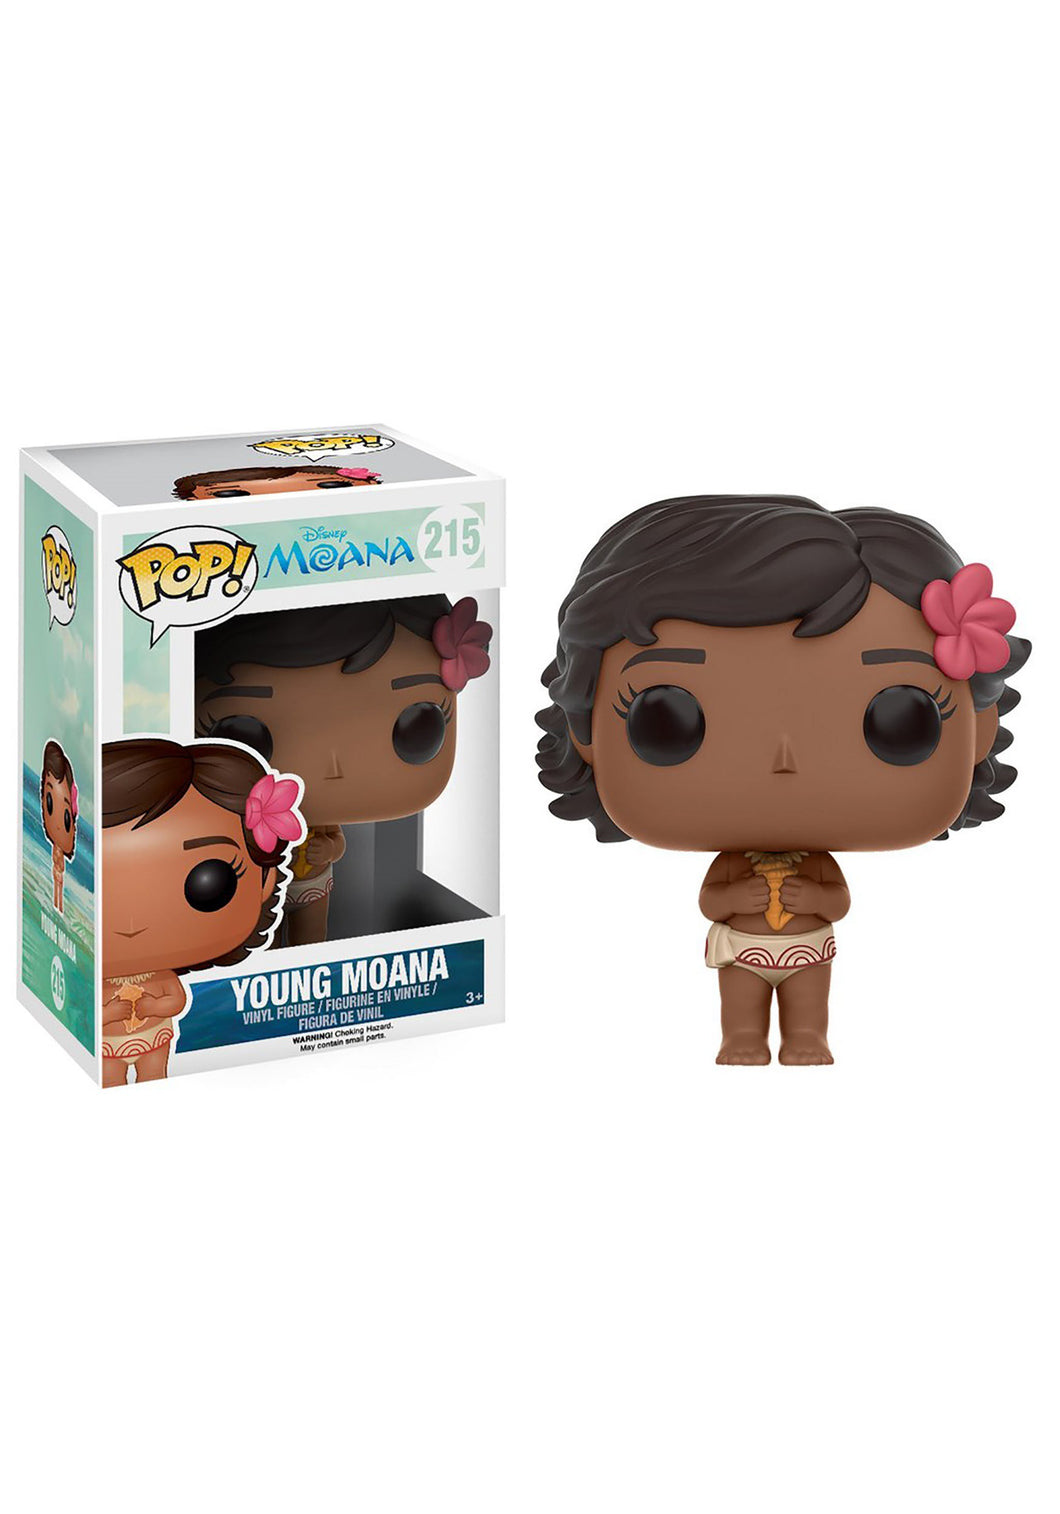 MOANA YOUNG MOANA FUNKO POP! VINYL FIGURE #215